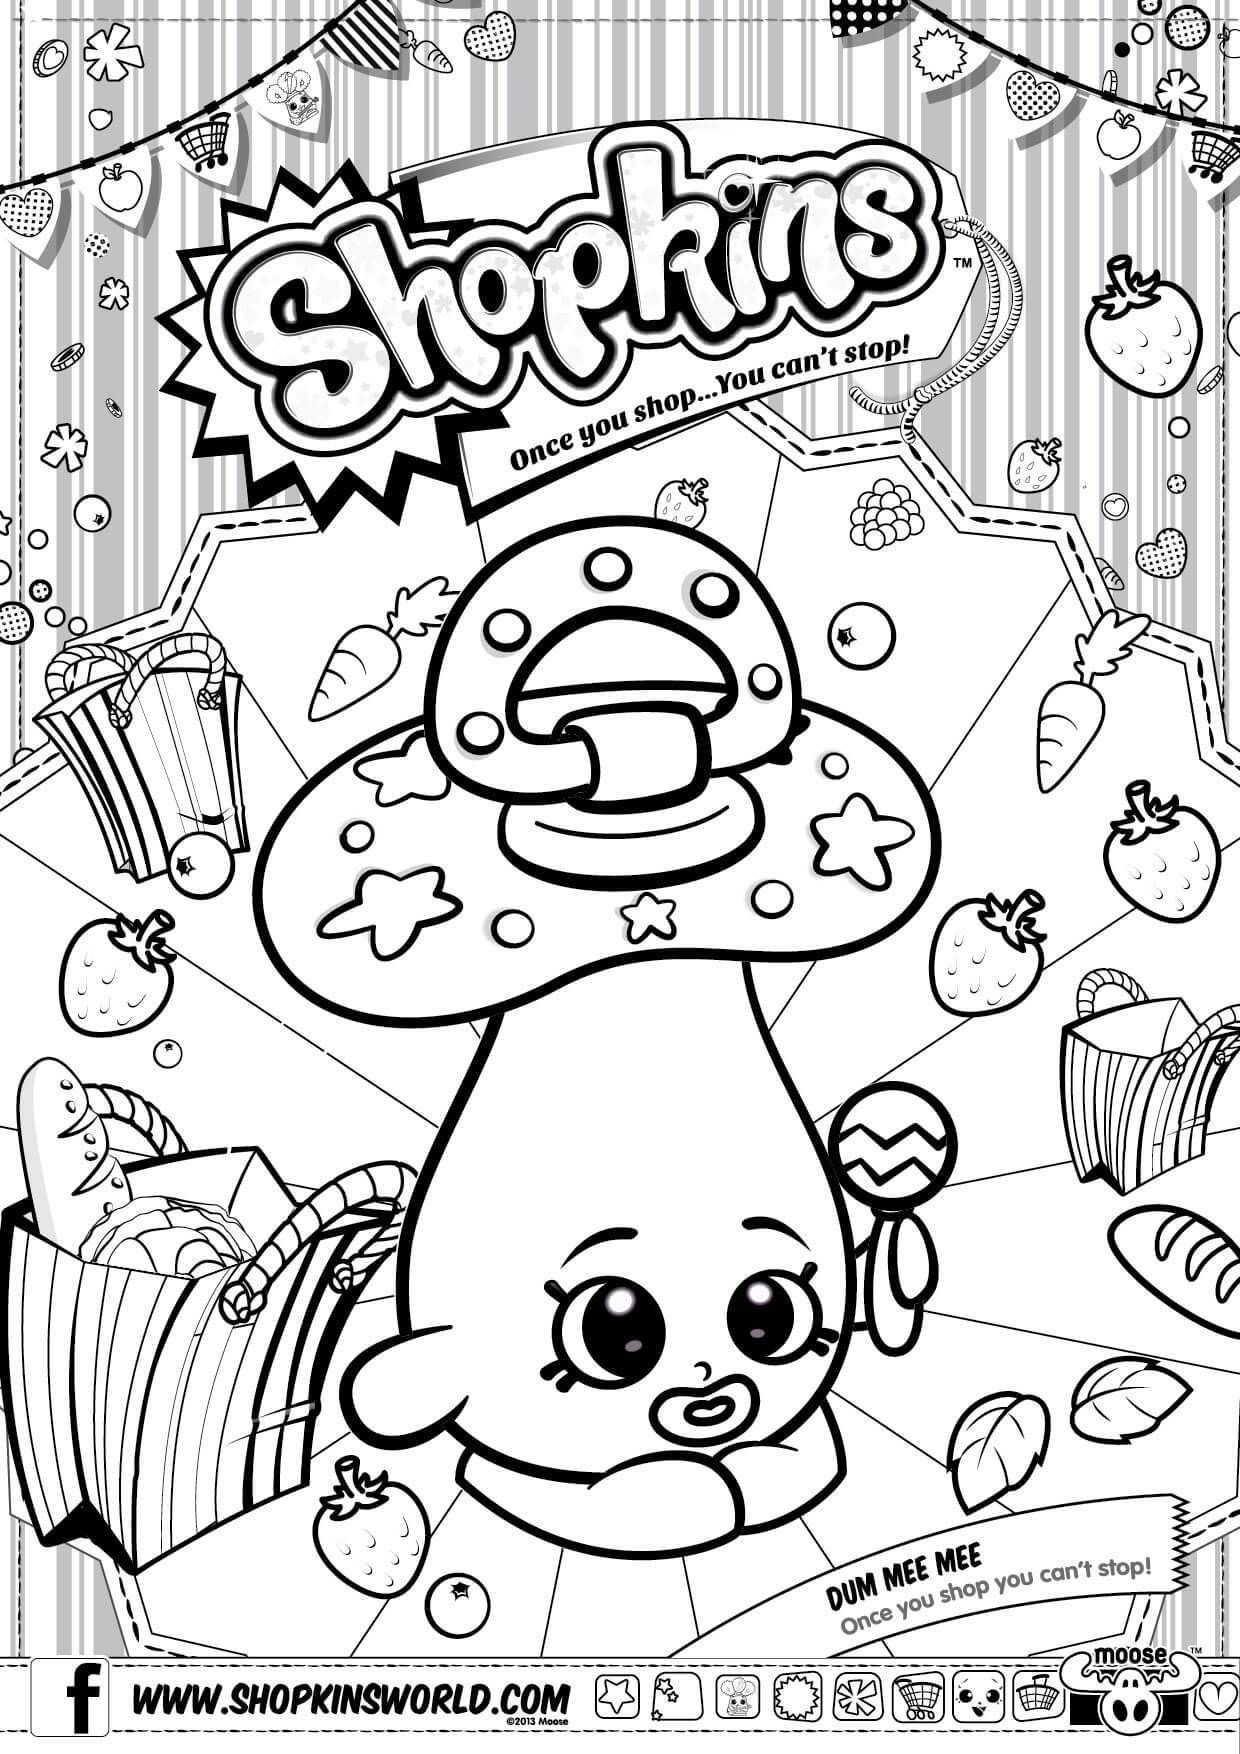 shopkin pictures that you can print print sneaky wedge shopkins season 2 coloring pages sew you that shopkin print pictures can